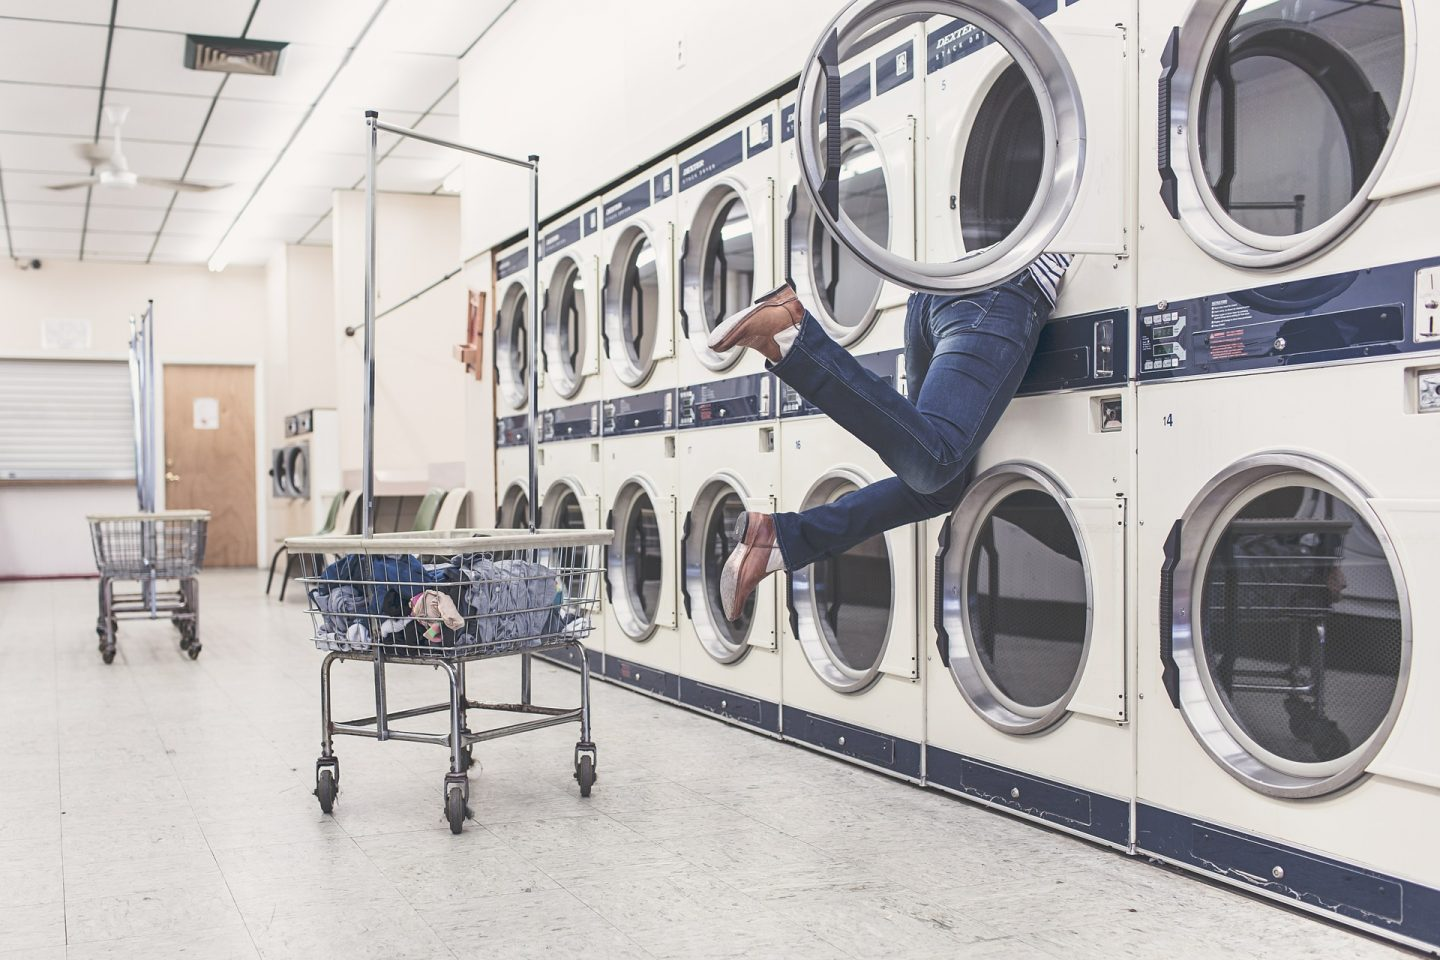 launderette with a woman head first inside a tumble drier, feet dangling